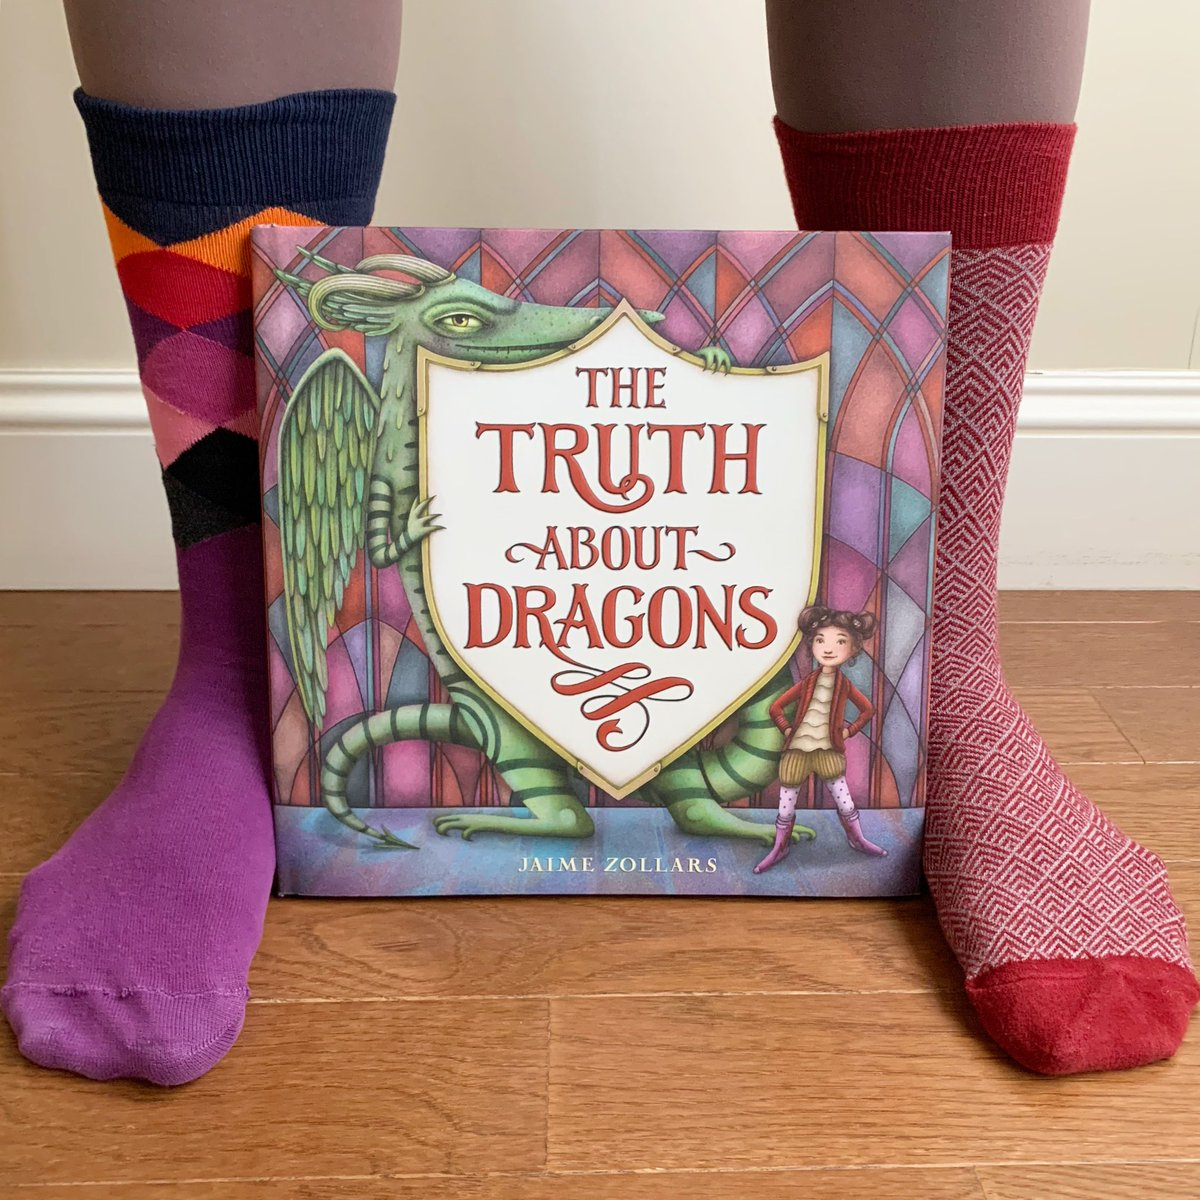 Celebrating a very special #bookbirthday with appropriately mismatched socks!  Congratulations @jaimezollars on THE TRUTH ABOUT DRAGONS publishing today! 🎉 https://t.co/UVOQvr6FXz